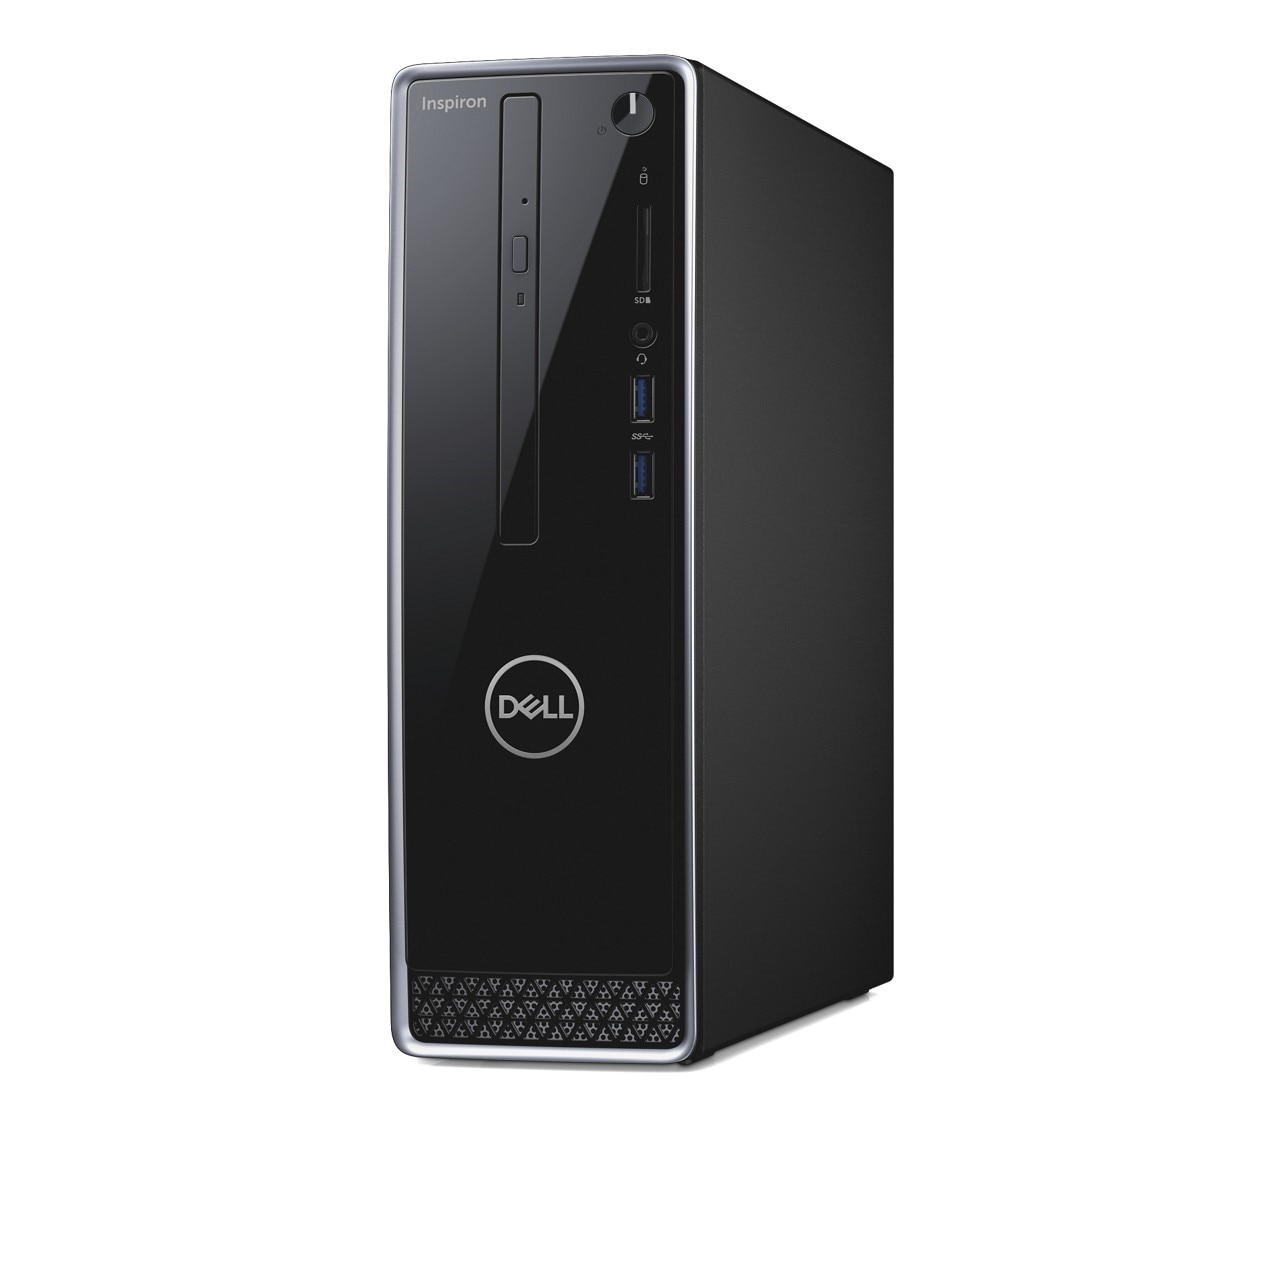 Inspiron 3470 Small Desktop